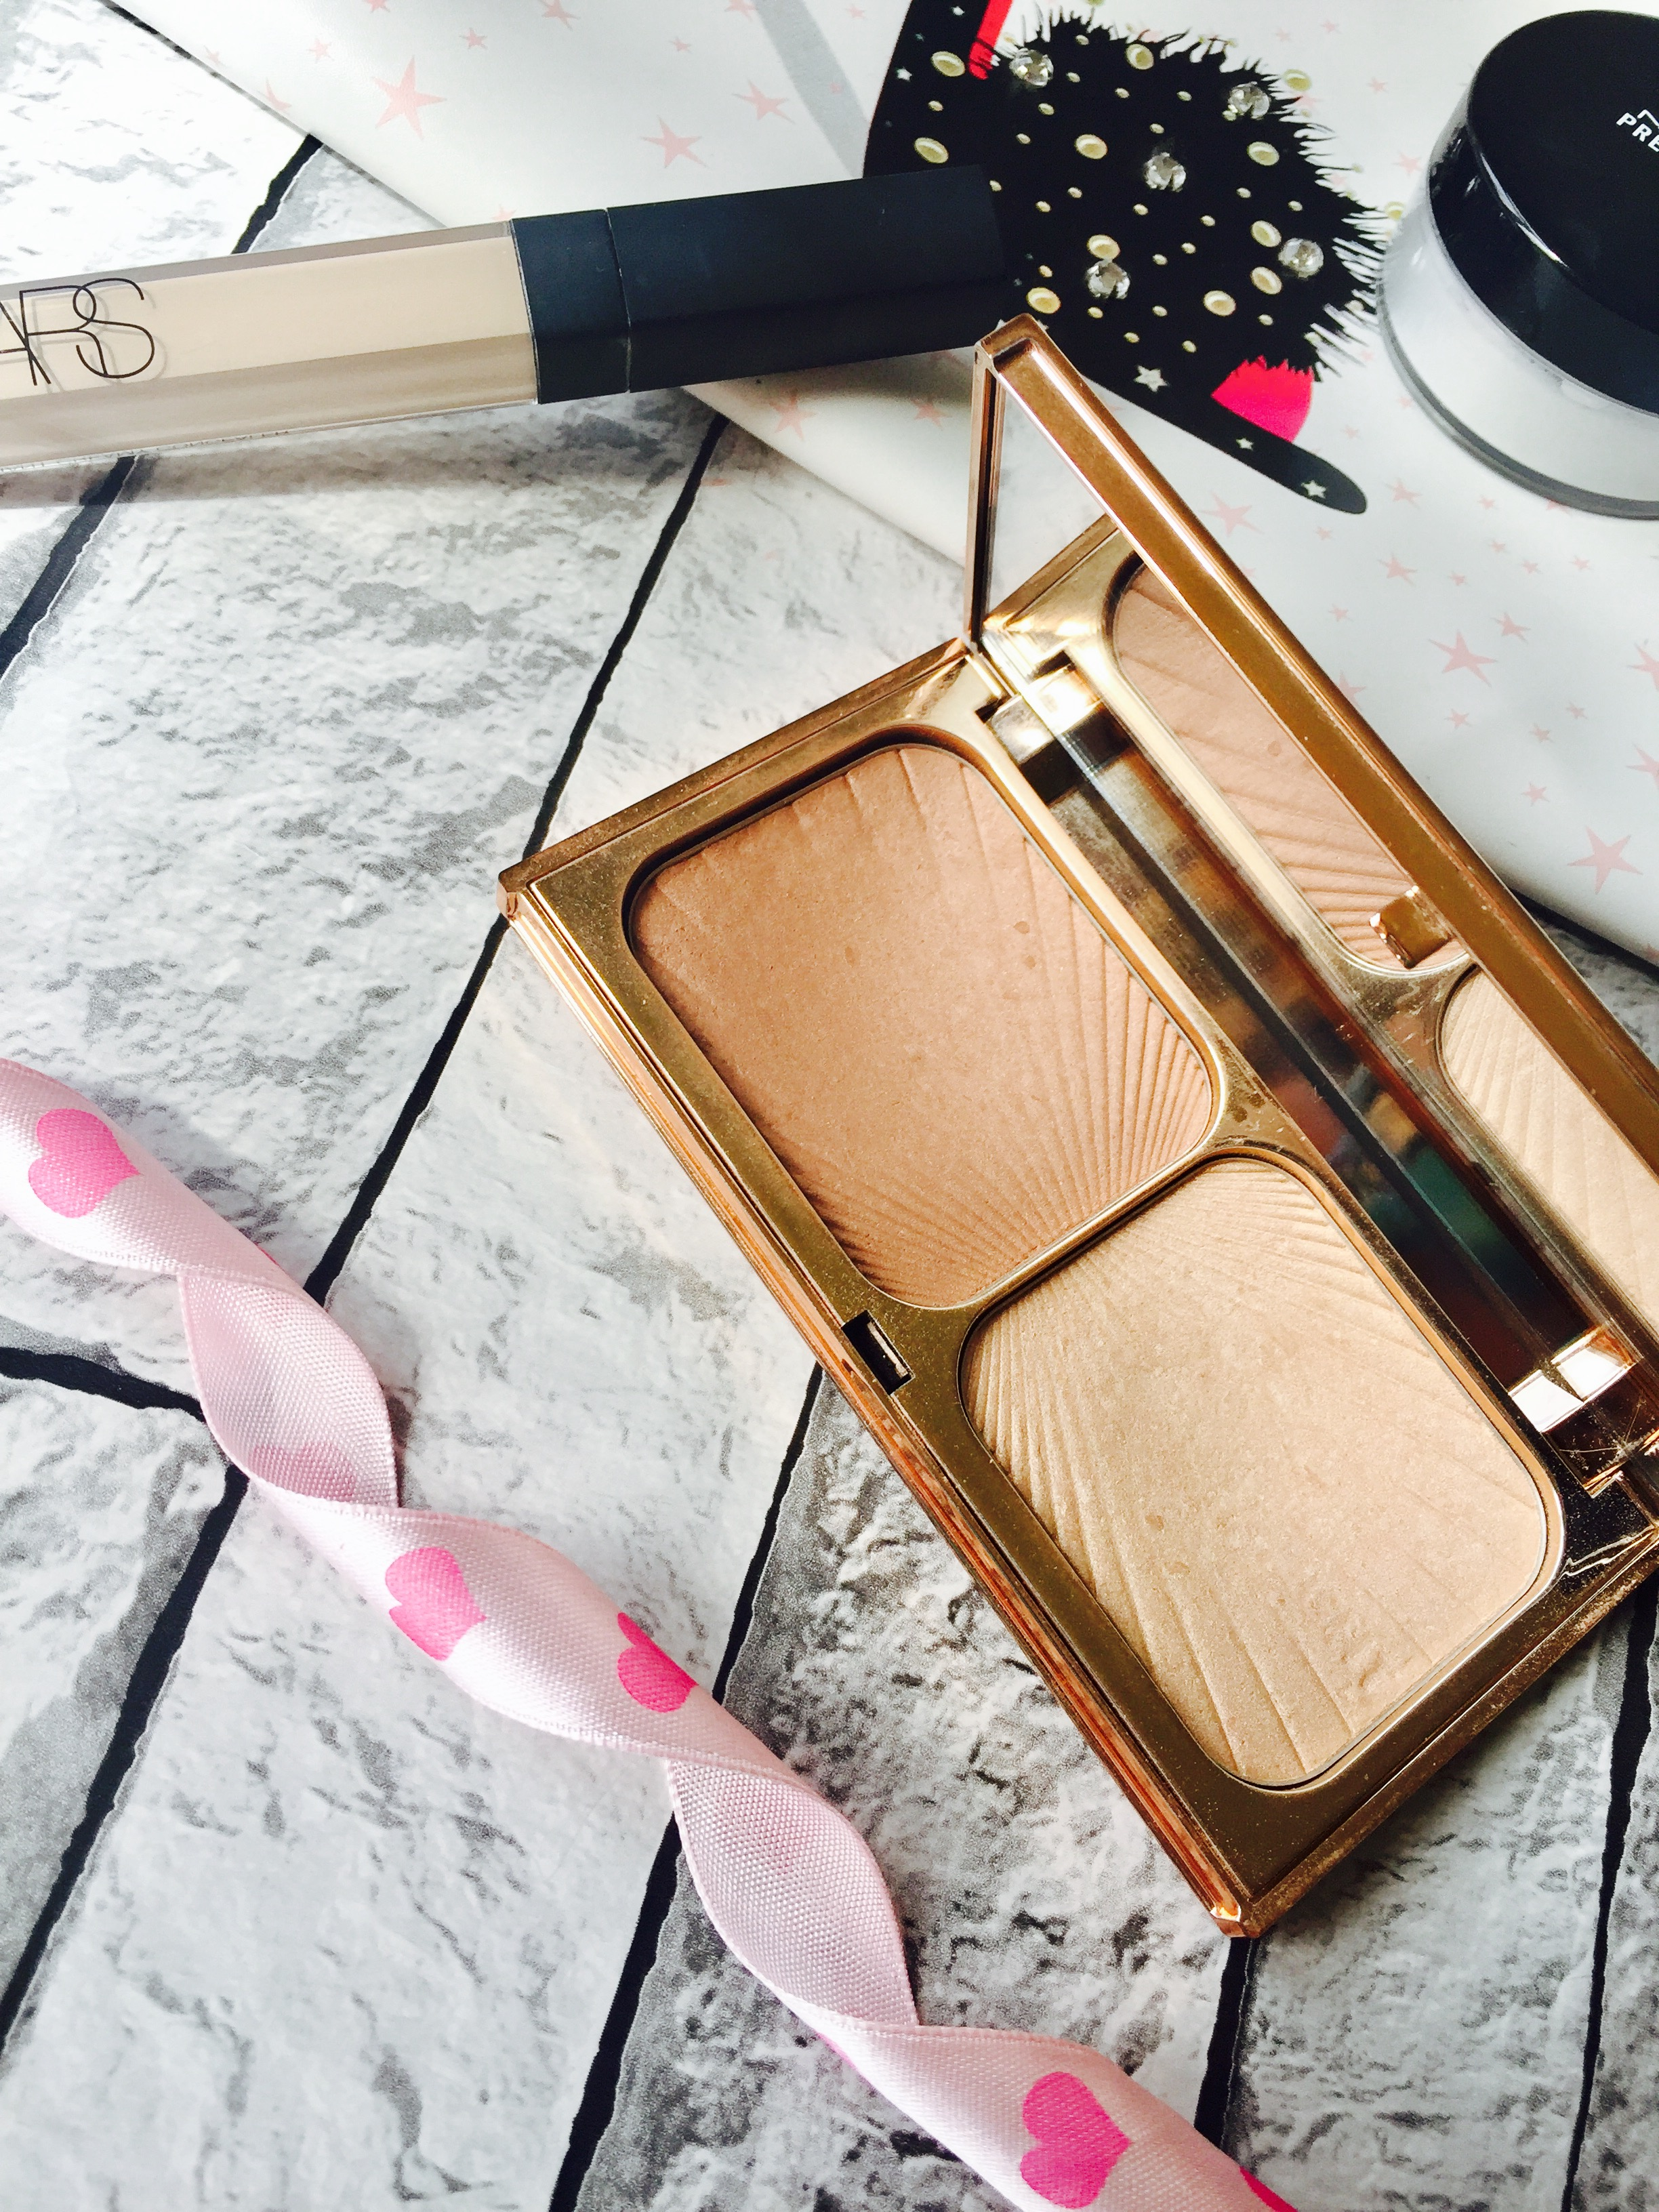 Everyday makeup bag must haves Charlotte Tilbury Filmstar Bronze n glow